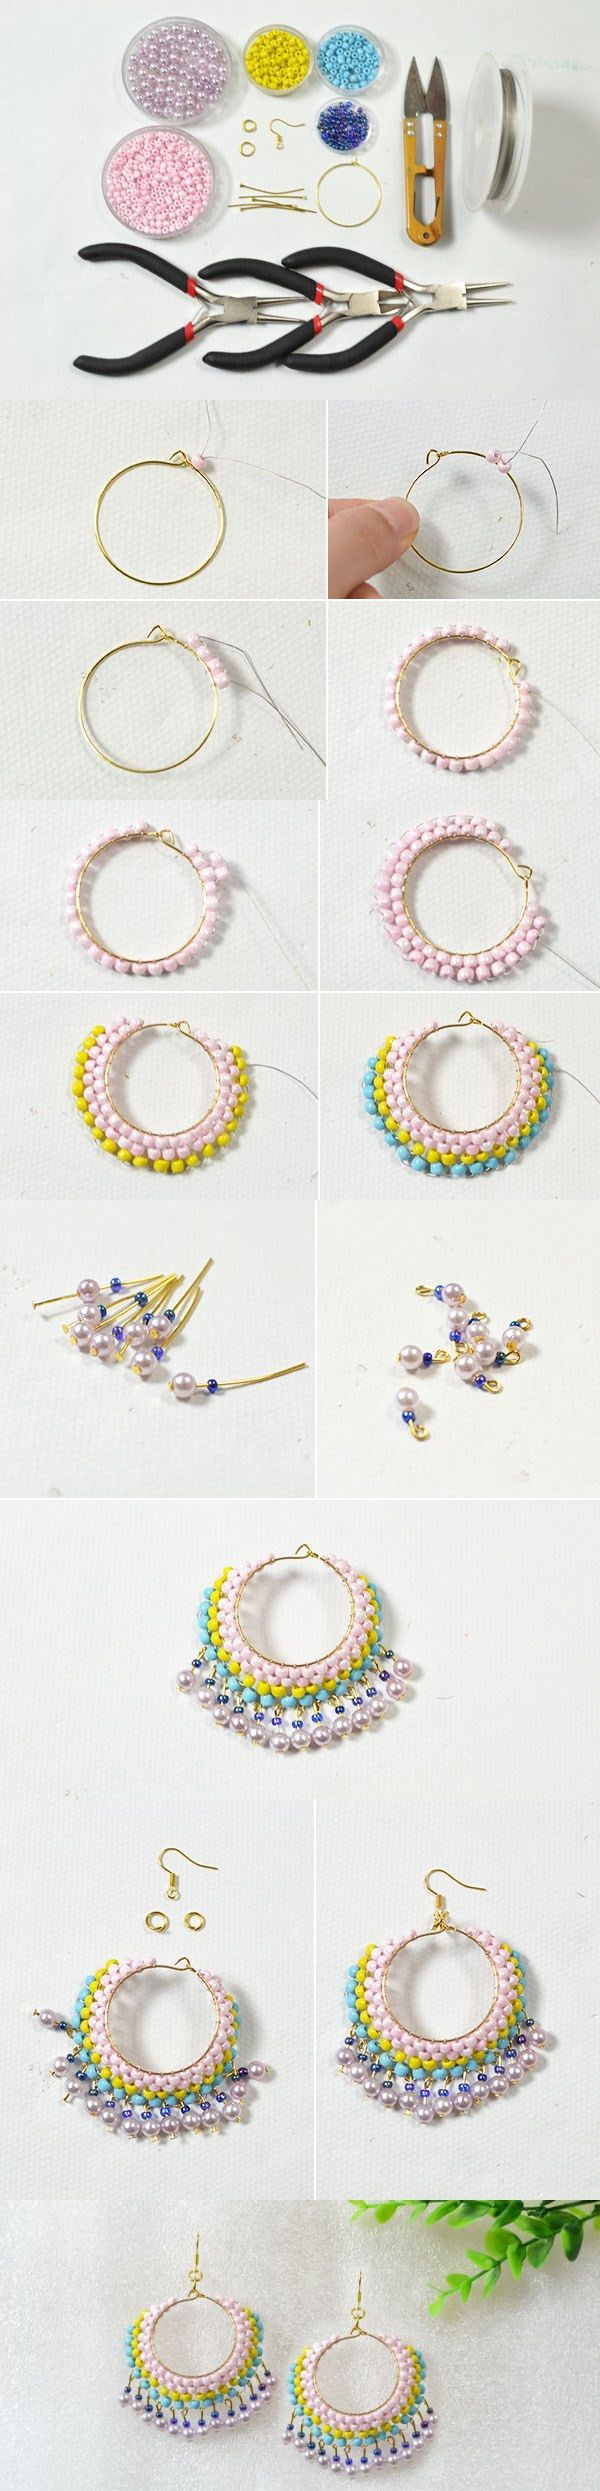 Easy Earring Design For Green Hands Making Beaded Multi Color Hoop Earrings At Home From Lc Pandahall